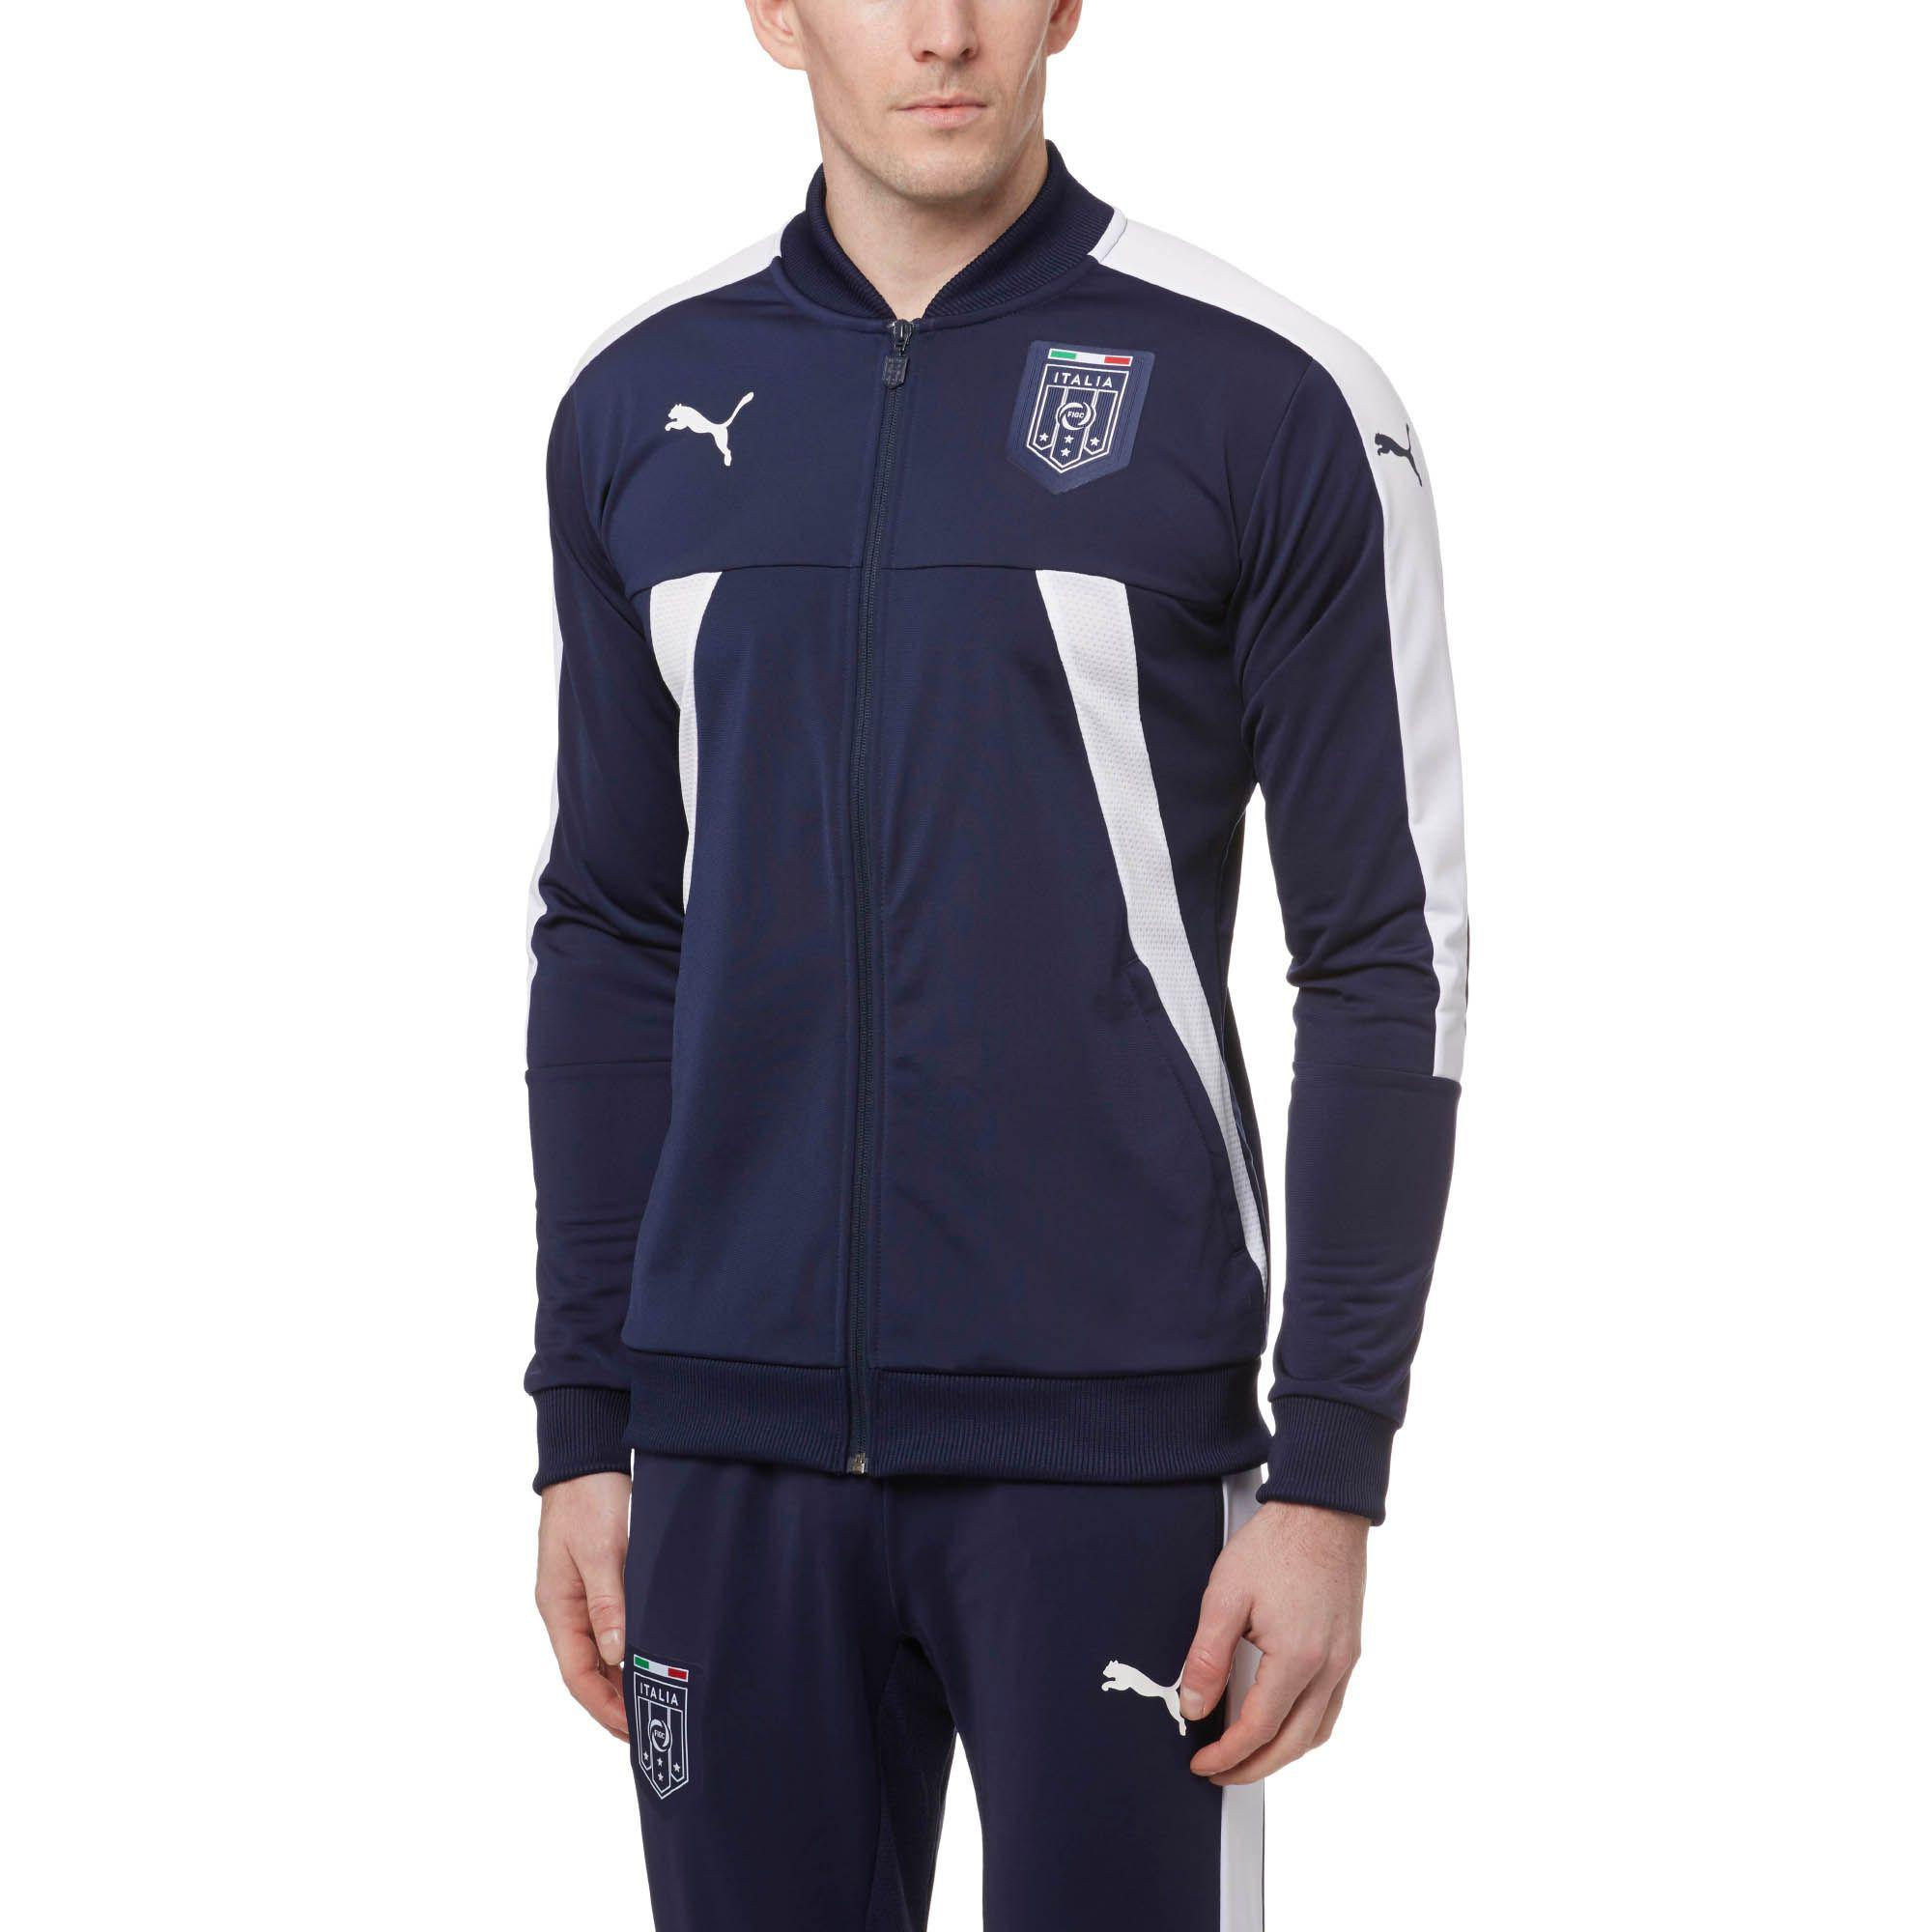 824b7d0c9d7f Lyst - PUMA Figc Italia Stadium Track Jacket in Blue for Men